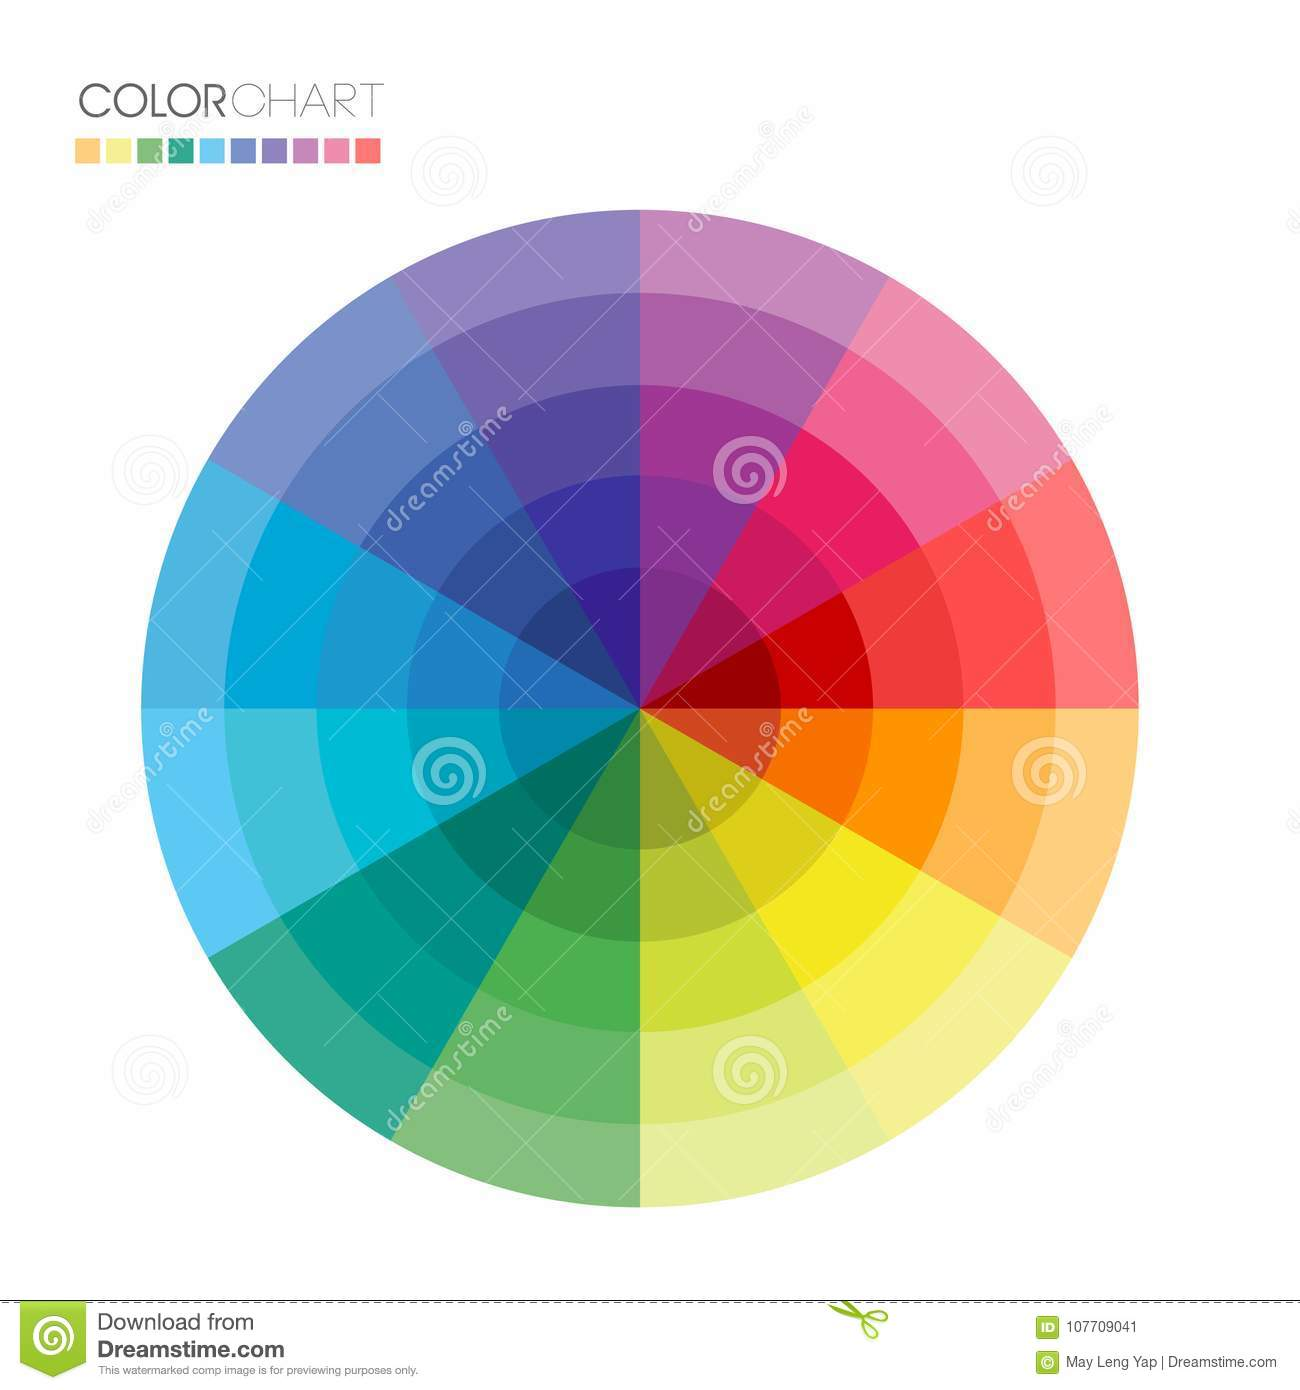 Useful Color Wheel Guide Stock Vector Illustration Of Shade 107709041